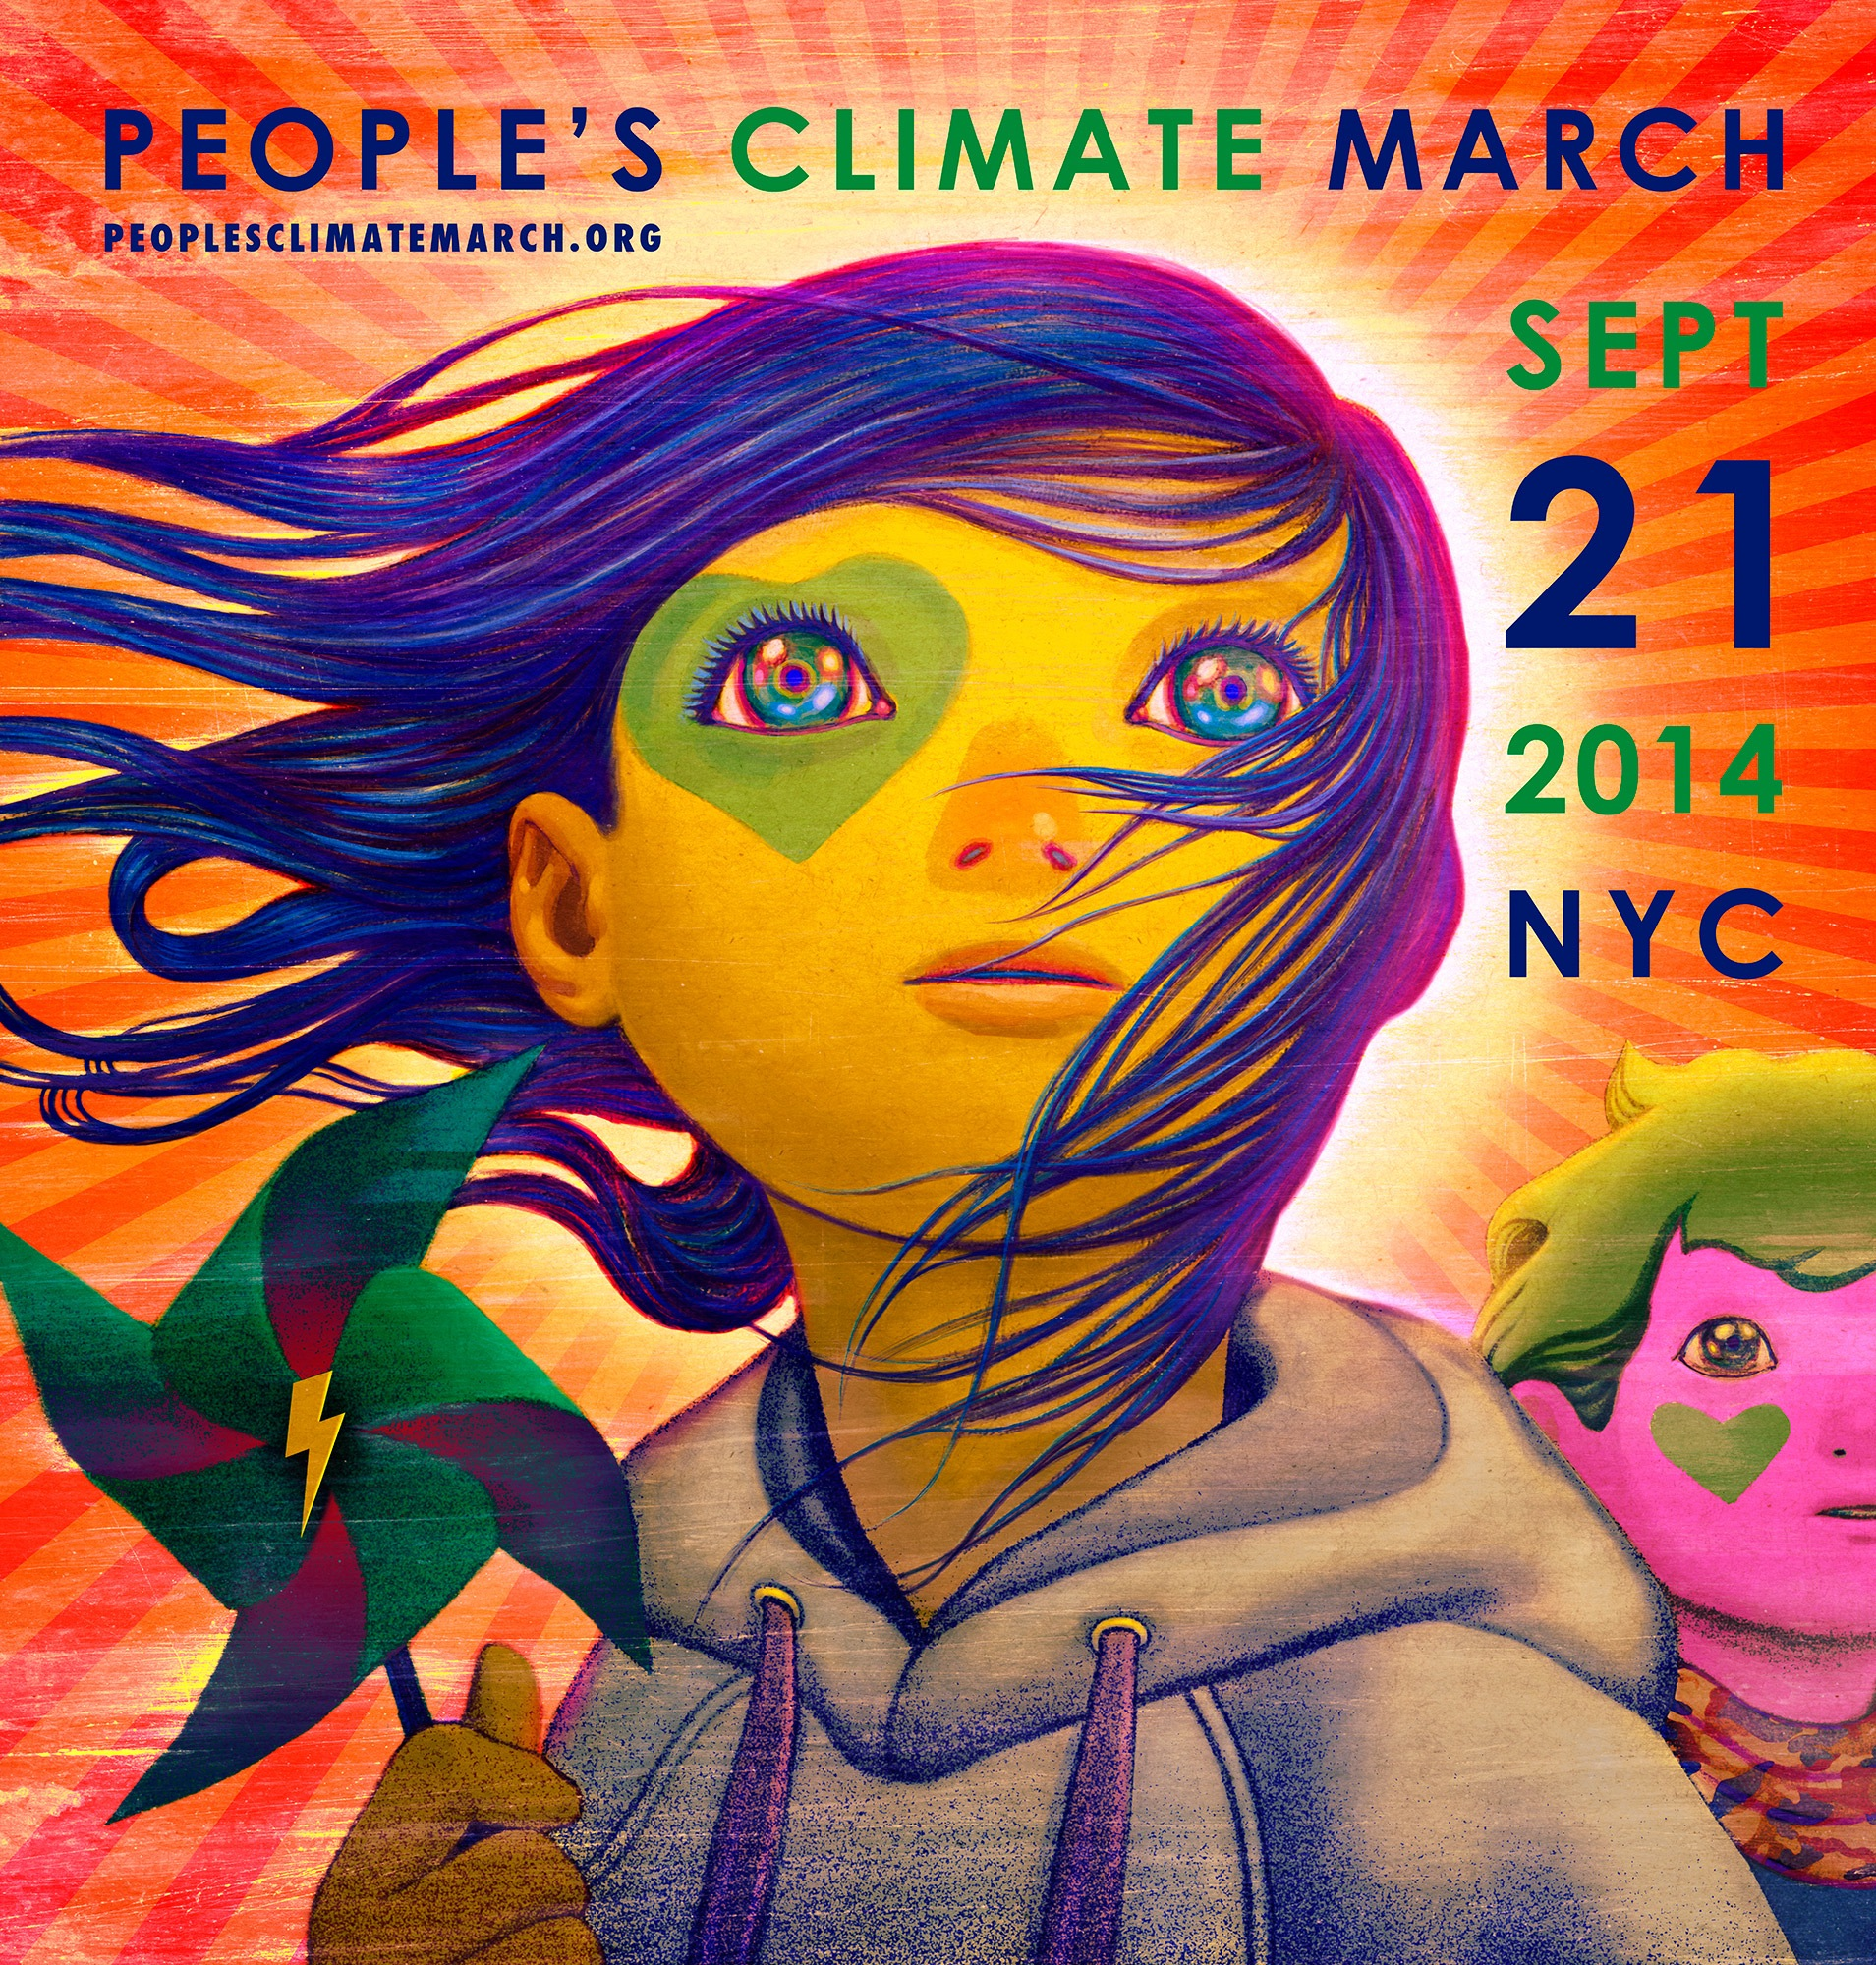 New York gets psyched for the People's Climate March